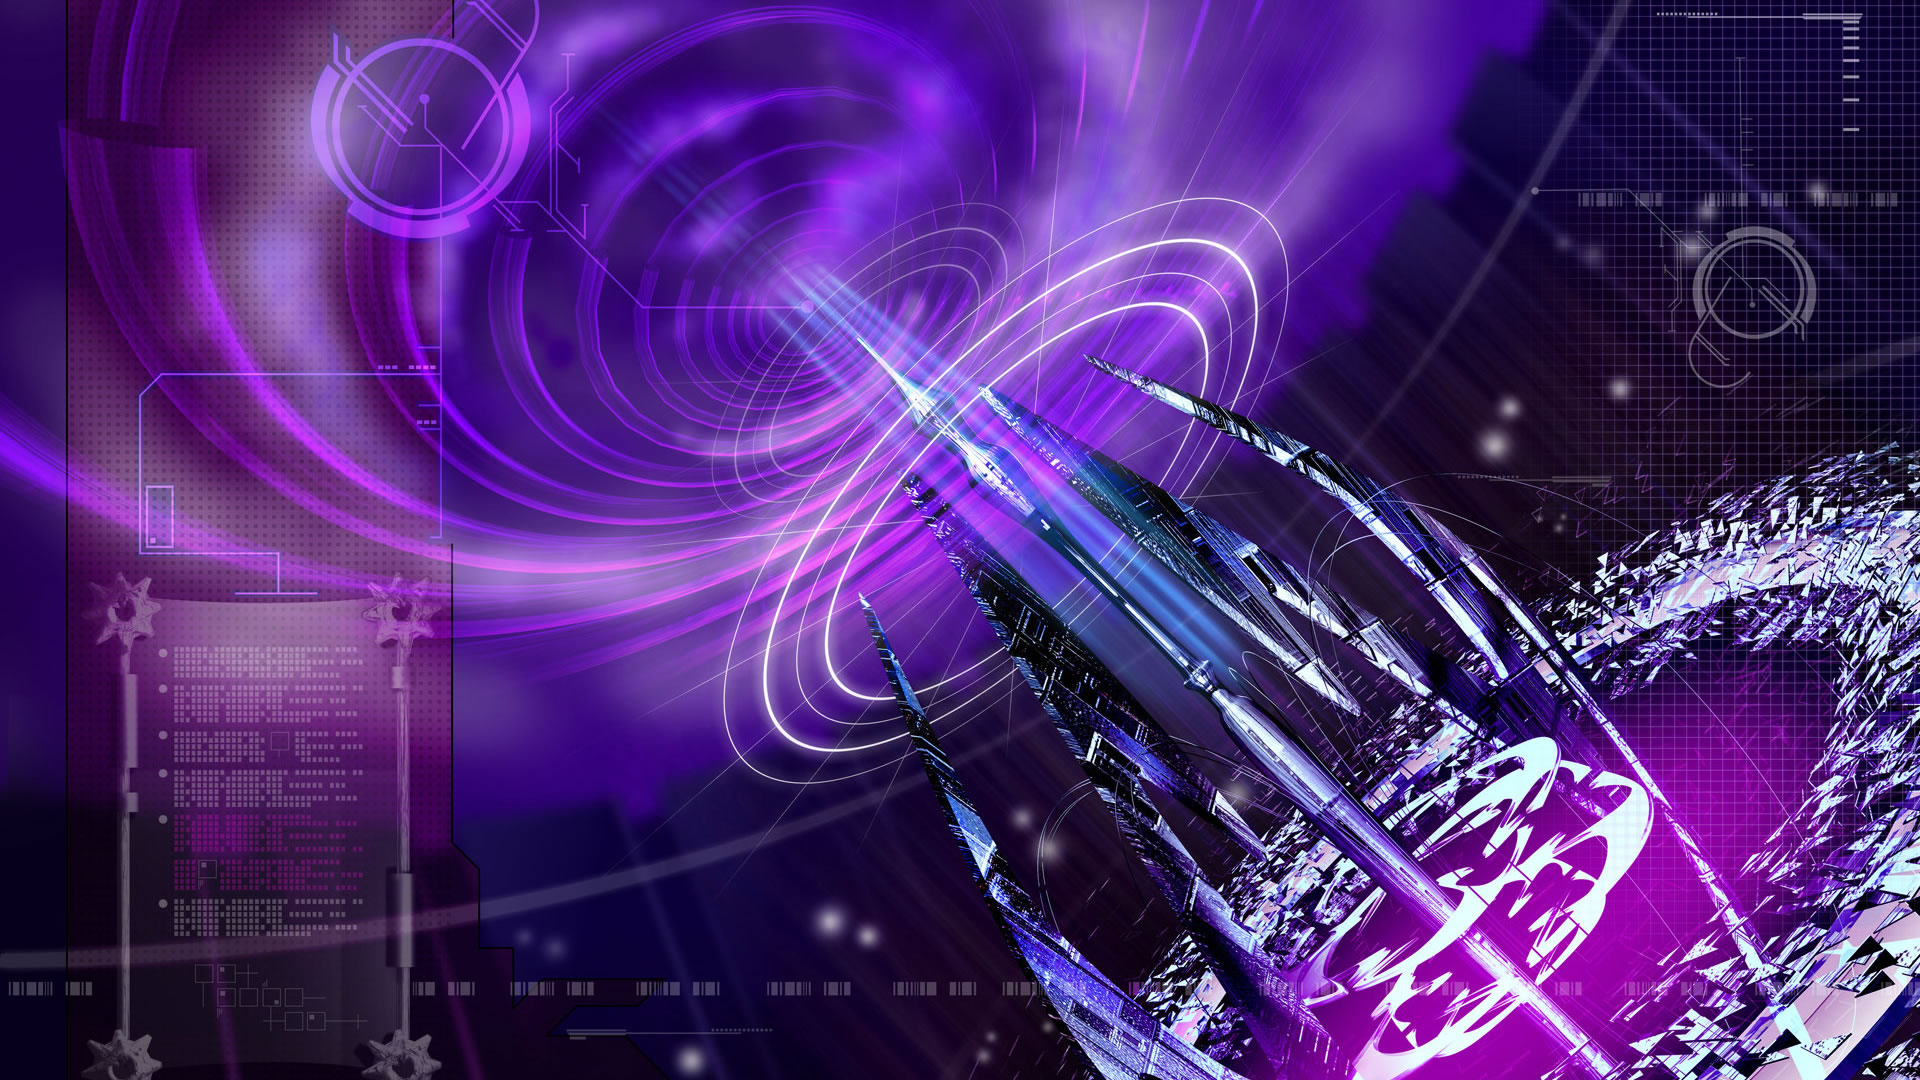 Cool Purple Backgrounds 1920x1080